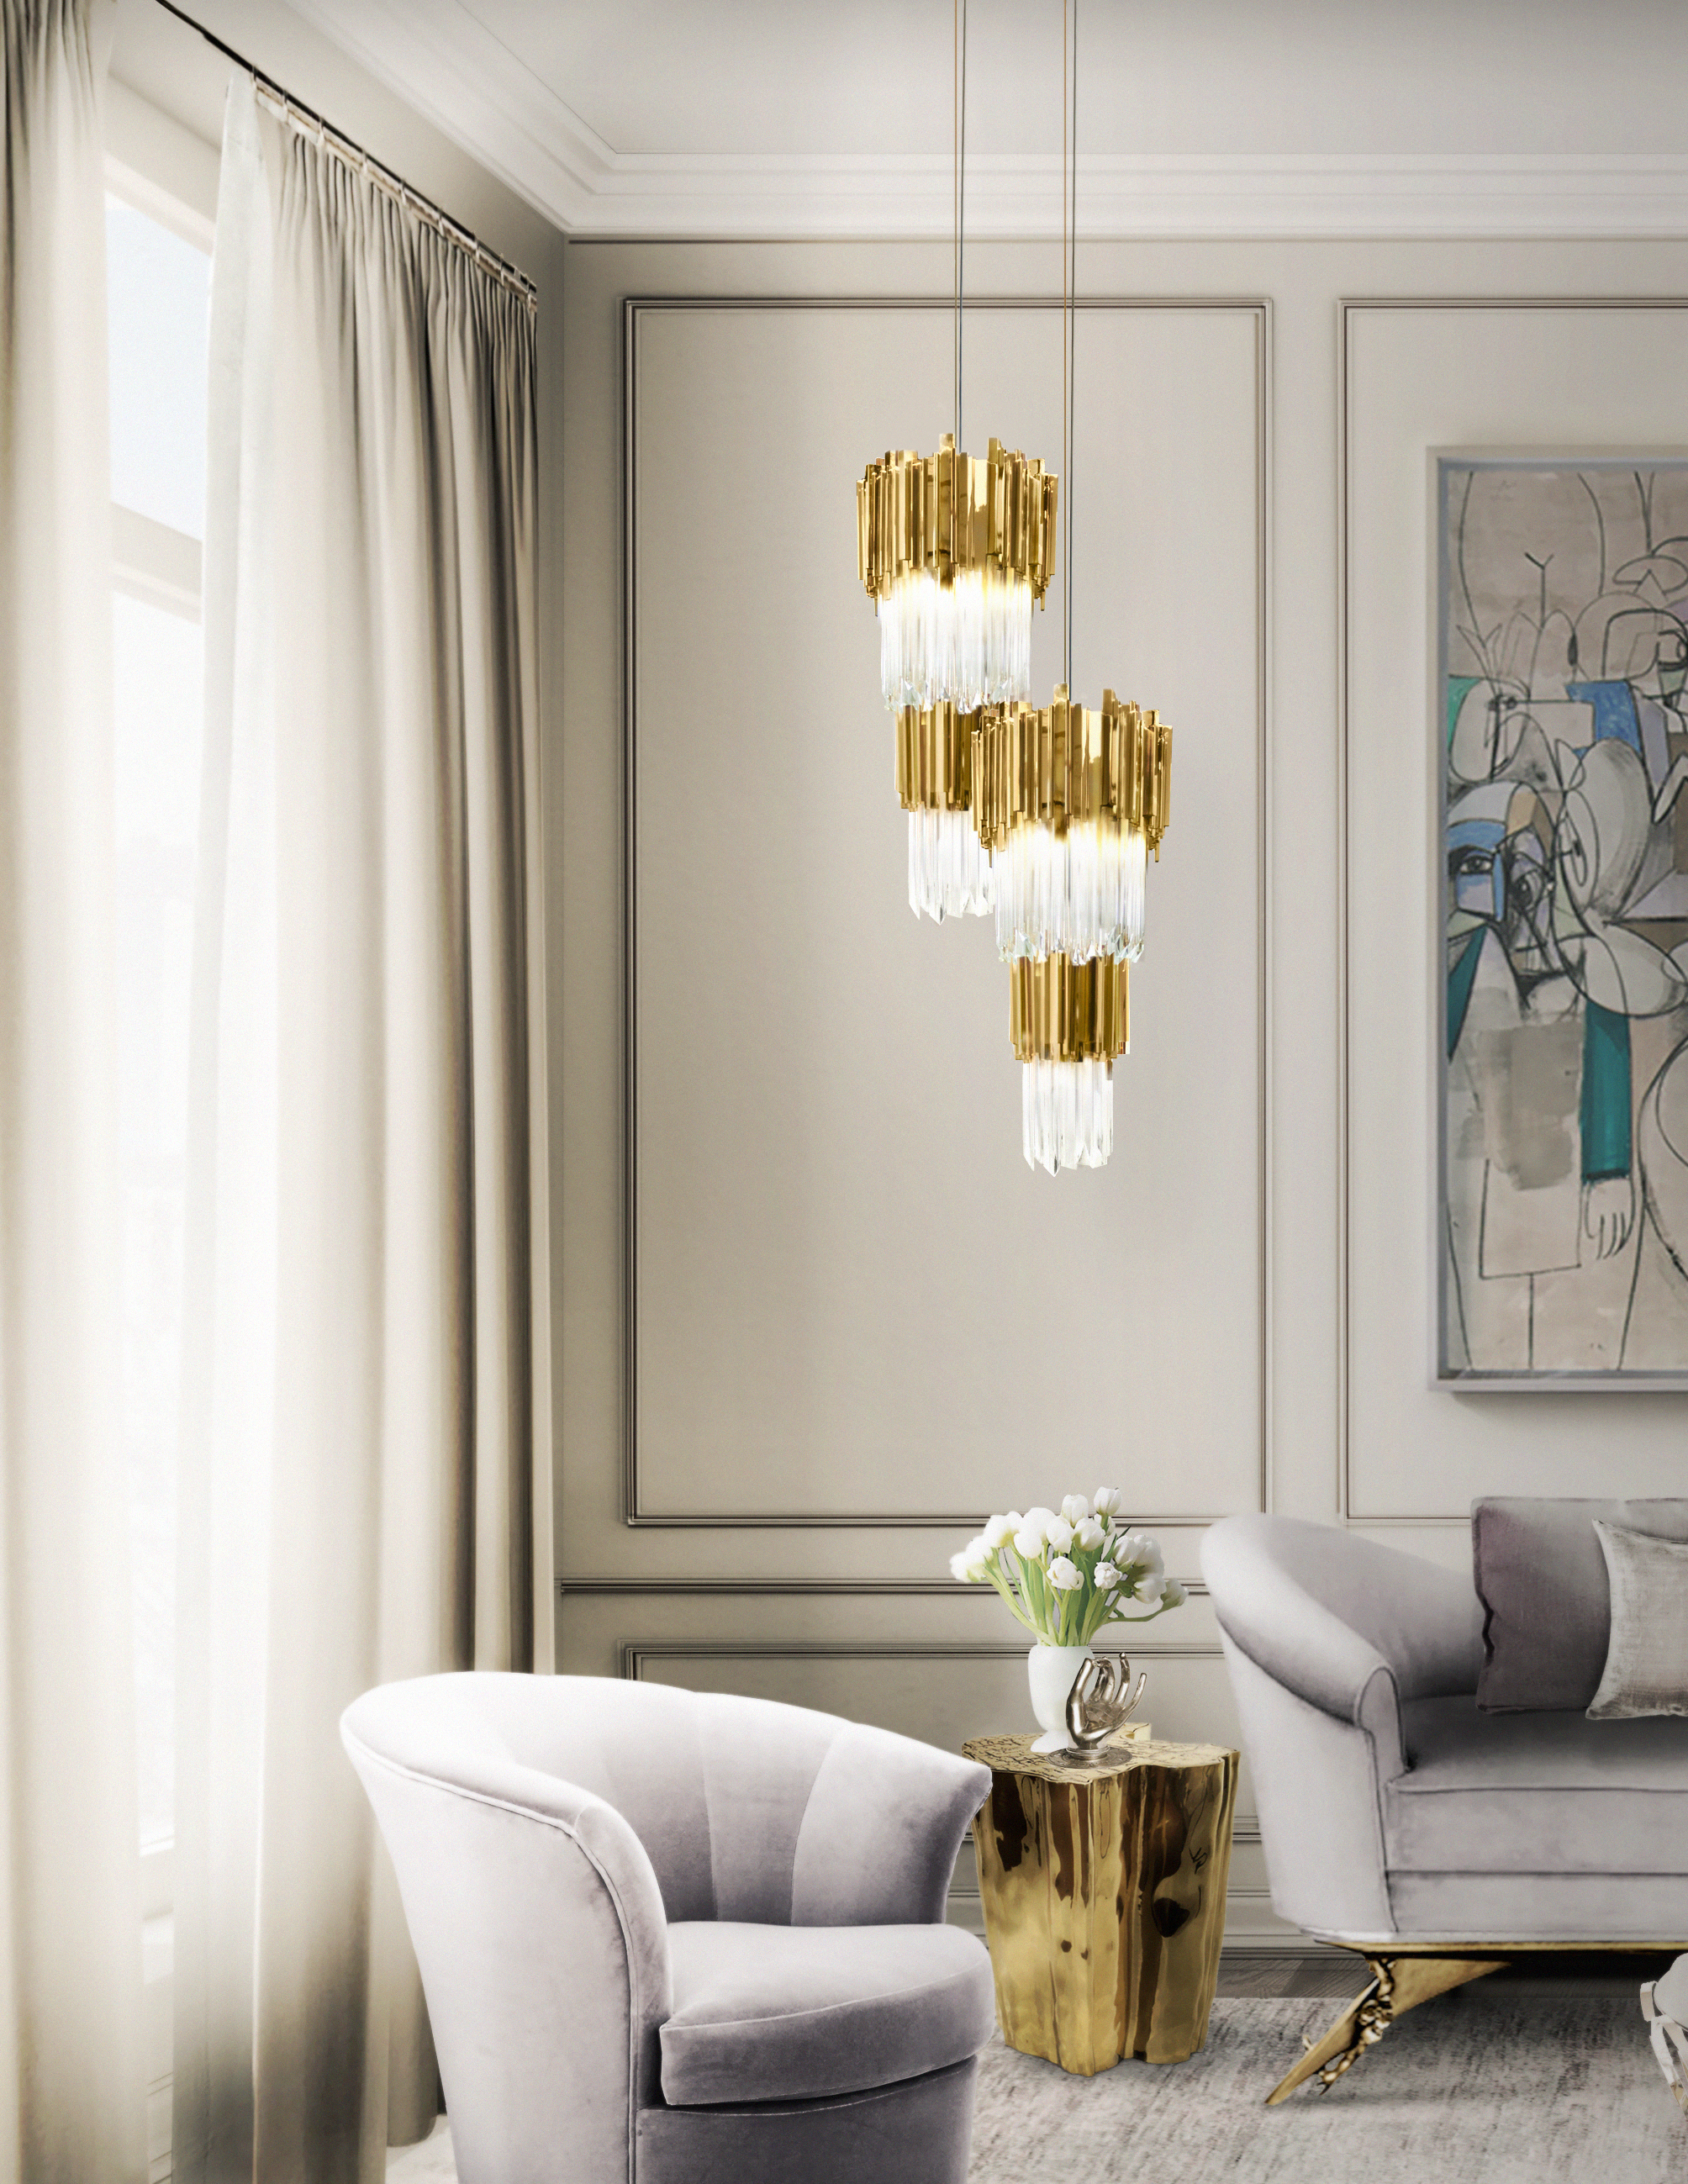 Empire Pendant Luxury Interiors luxury interiors The Empire Family: brighten up your luxury interiors Empire Pendant Luxury Interiors